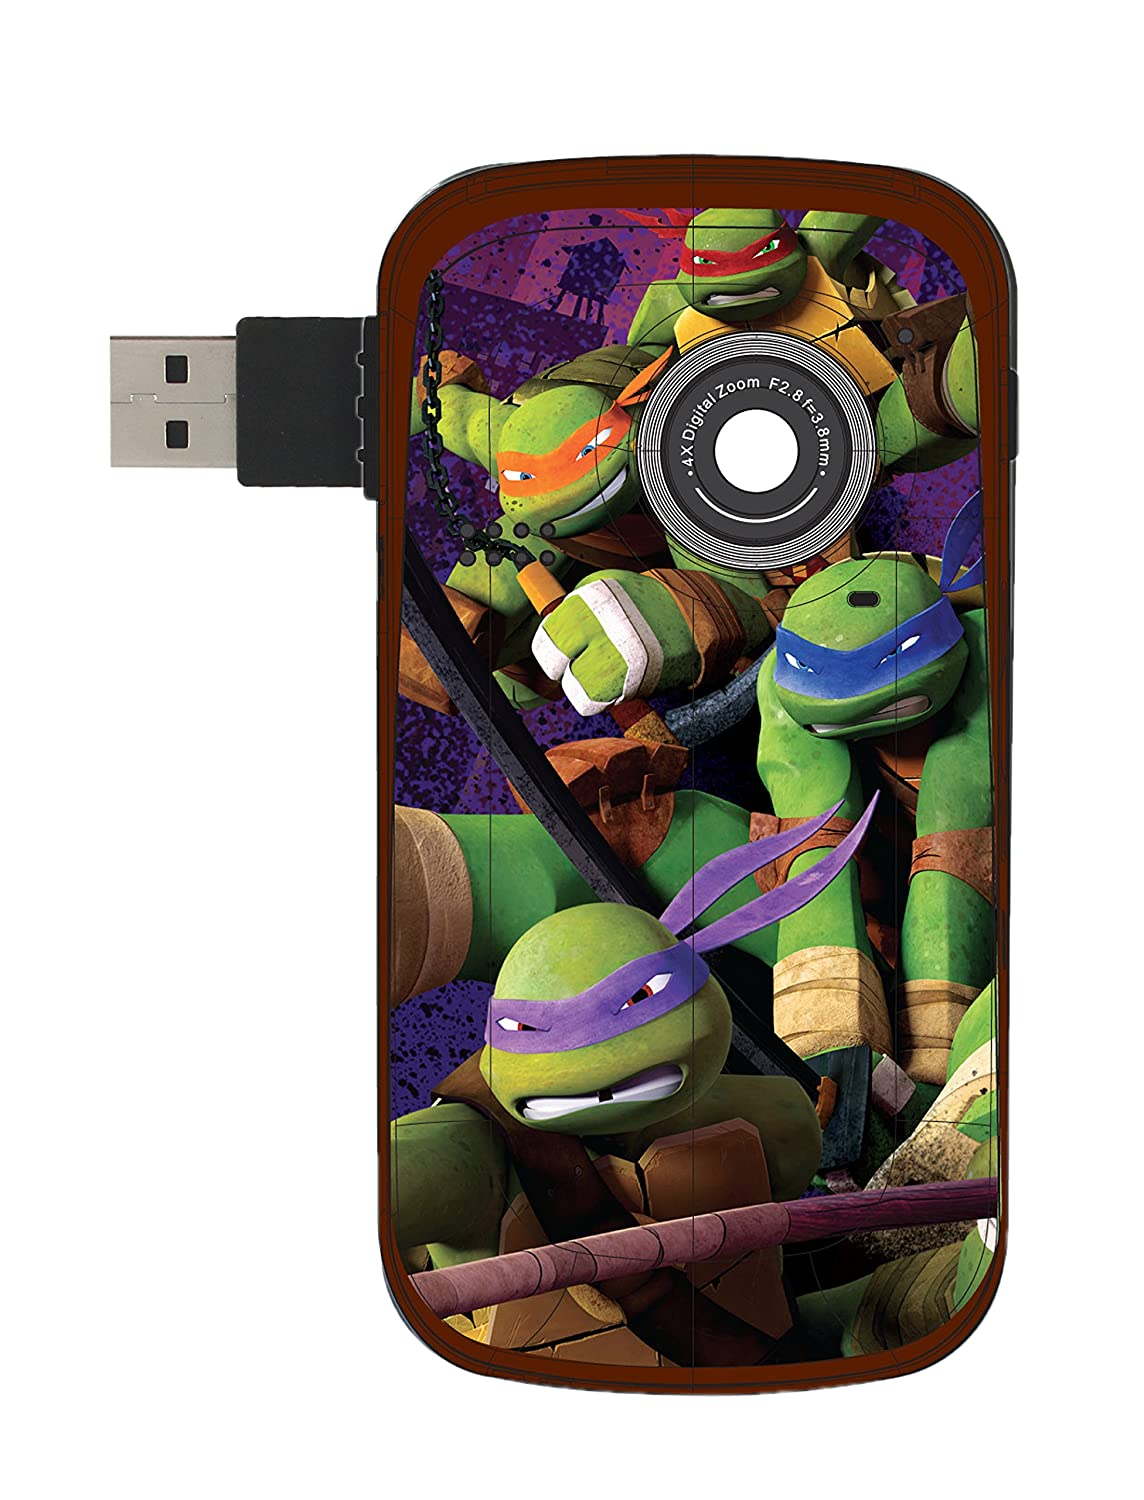 Marvel Teenage Mutant Ninja Turtles Digital Camcorder Sakar International 38065-INT-URT